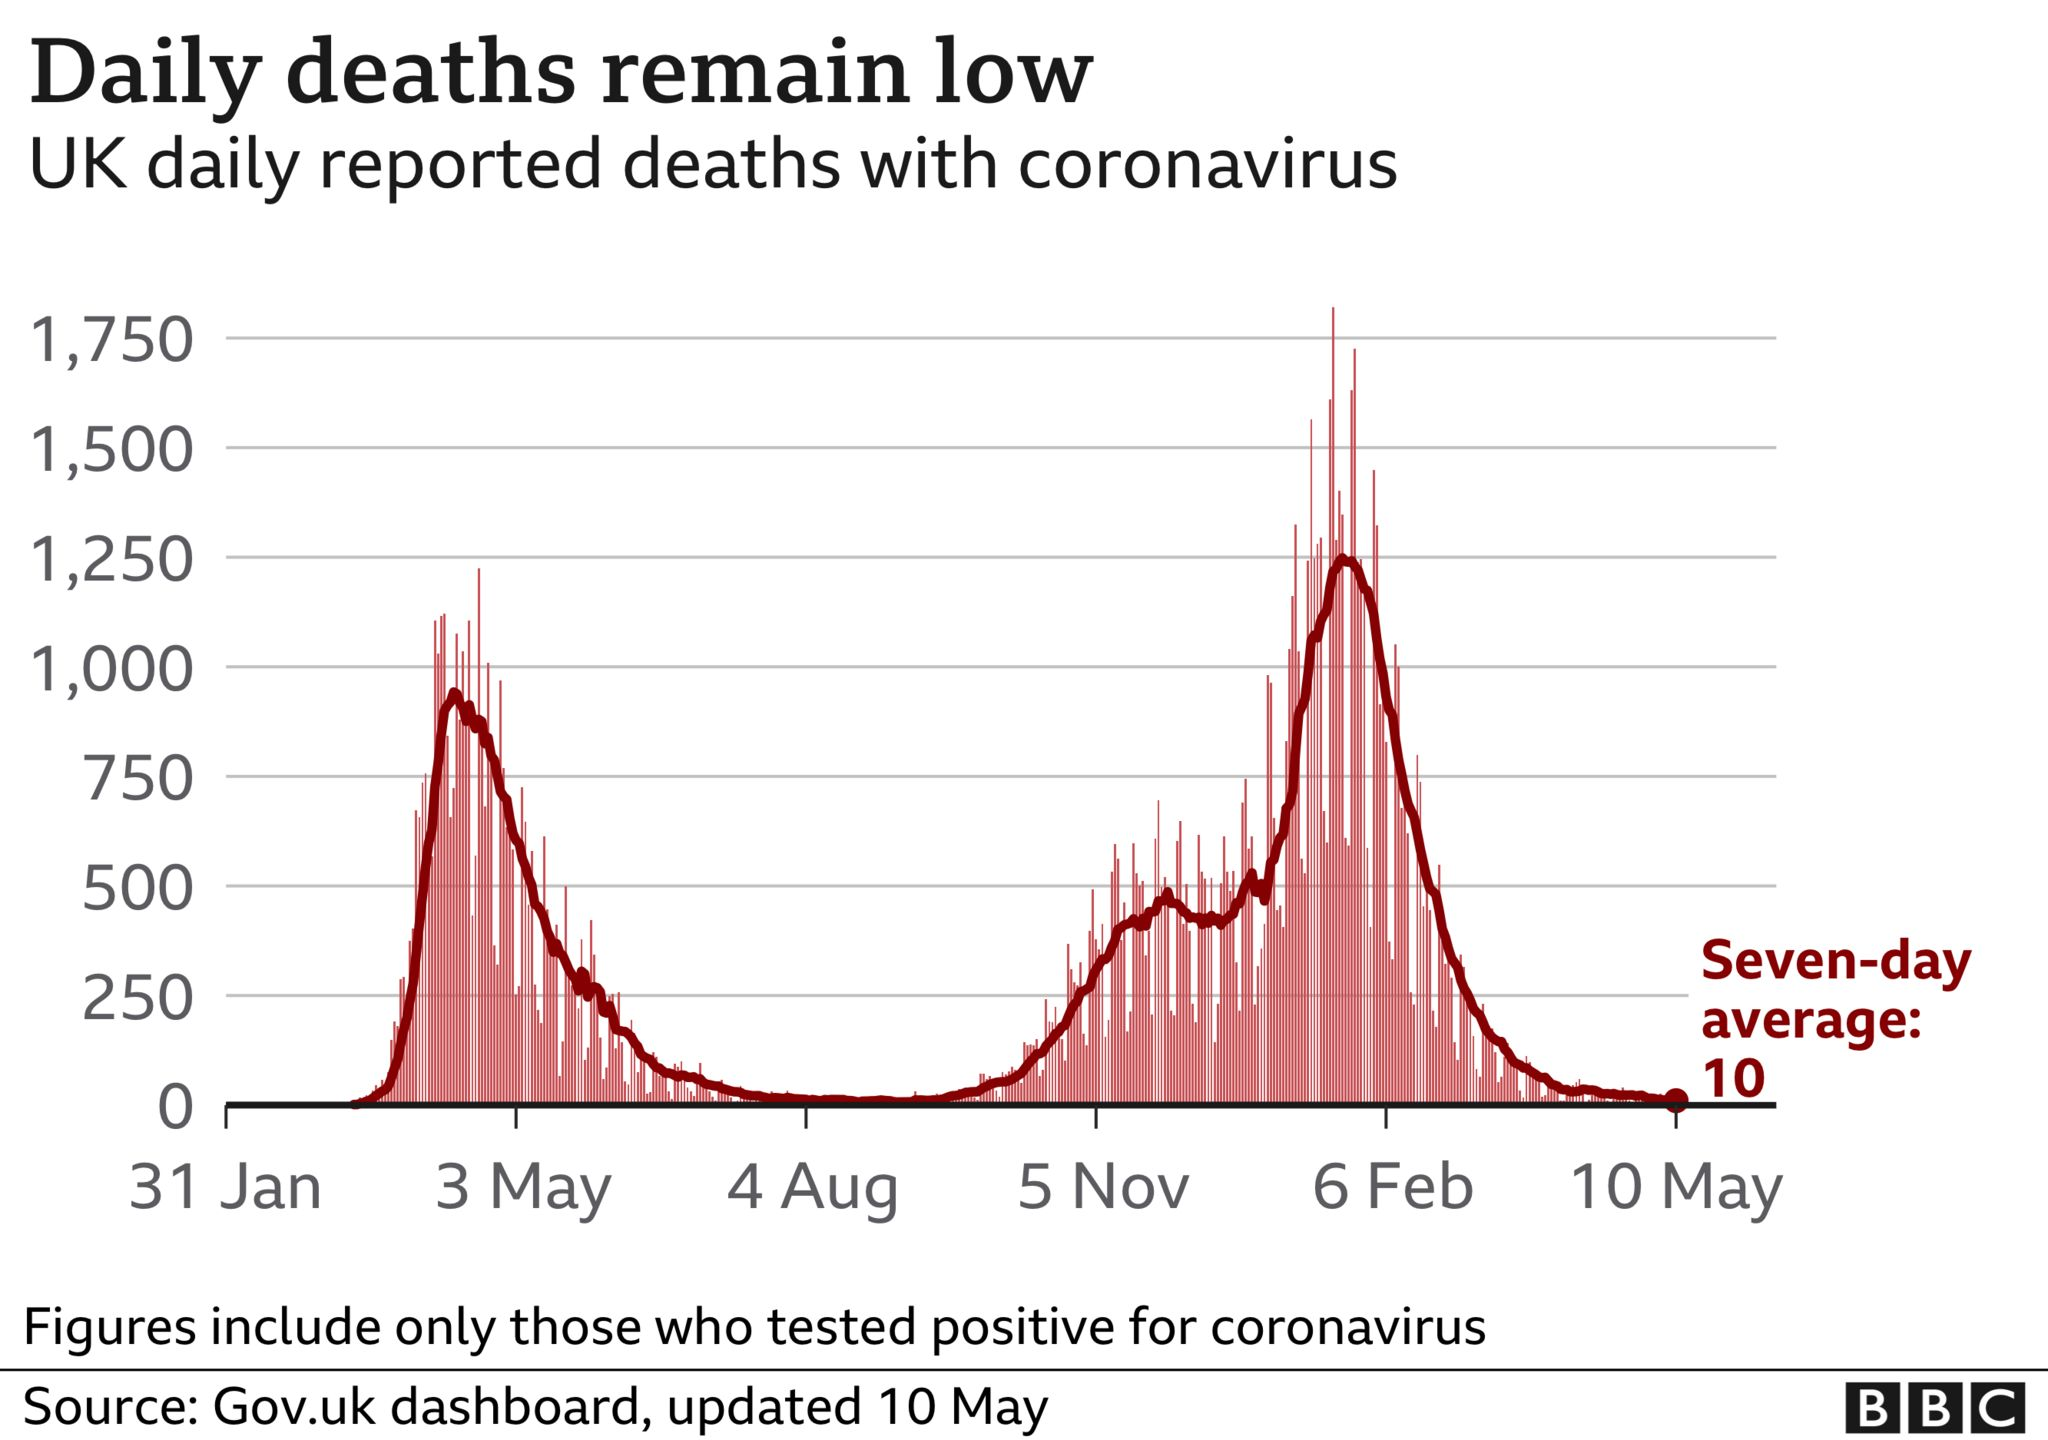 Chart showing UK daily Covid deaths